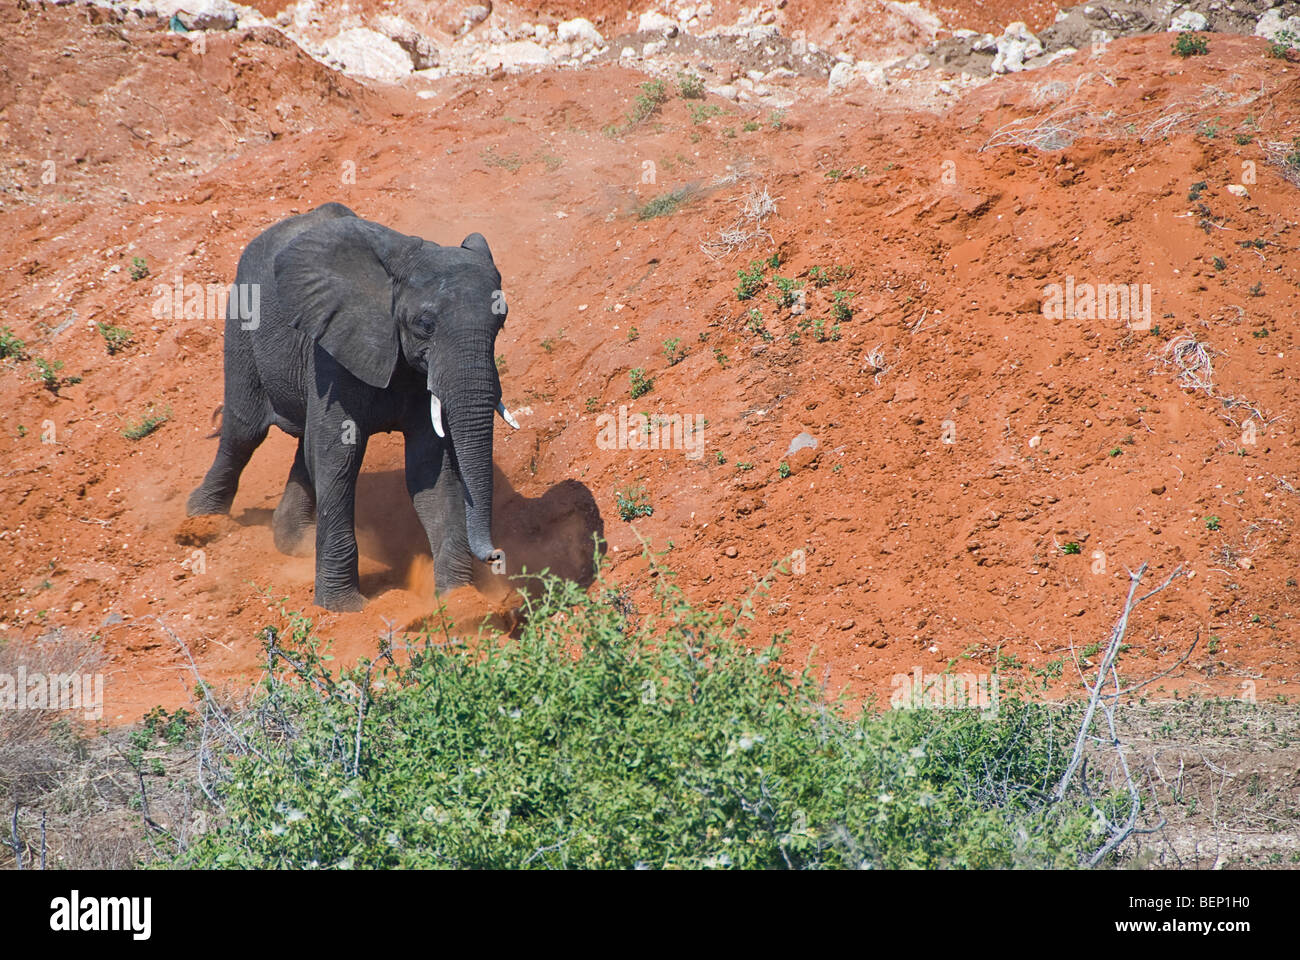 Elephant walking on a very red land near Chobe National Park, Botswana, Africa. - Stock Image